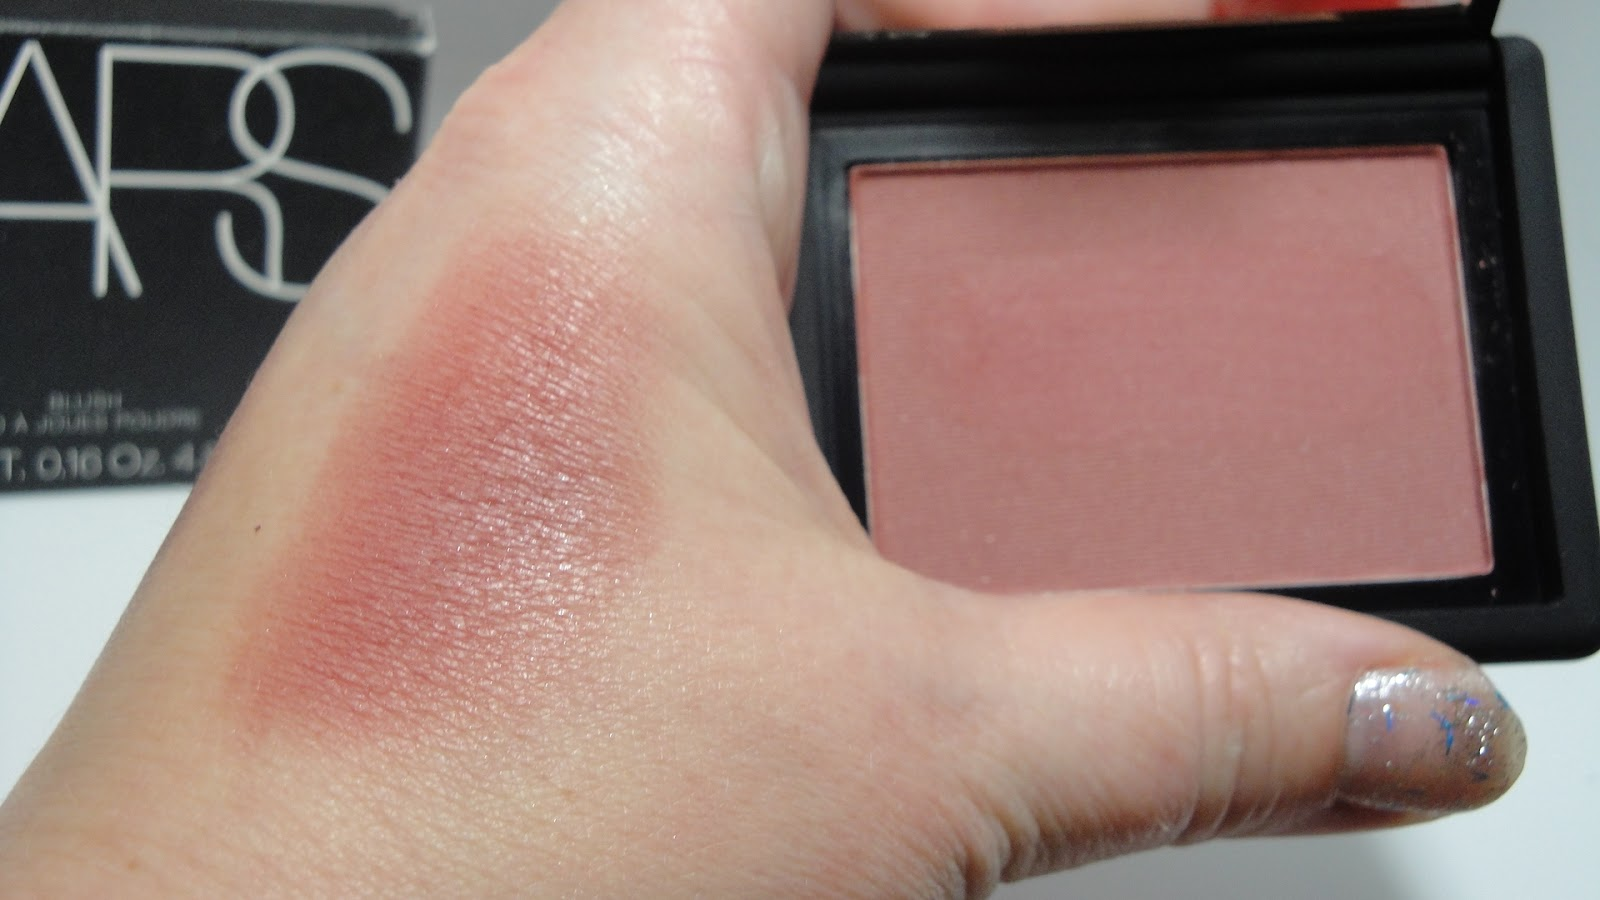 jayded dreaming beauty blog dolce vita nars blush swatches and review. Black Bedroom Furniture Sets. Home Design Ideas